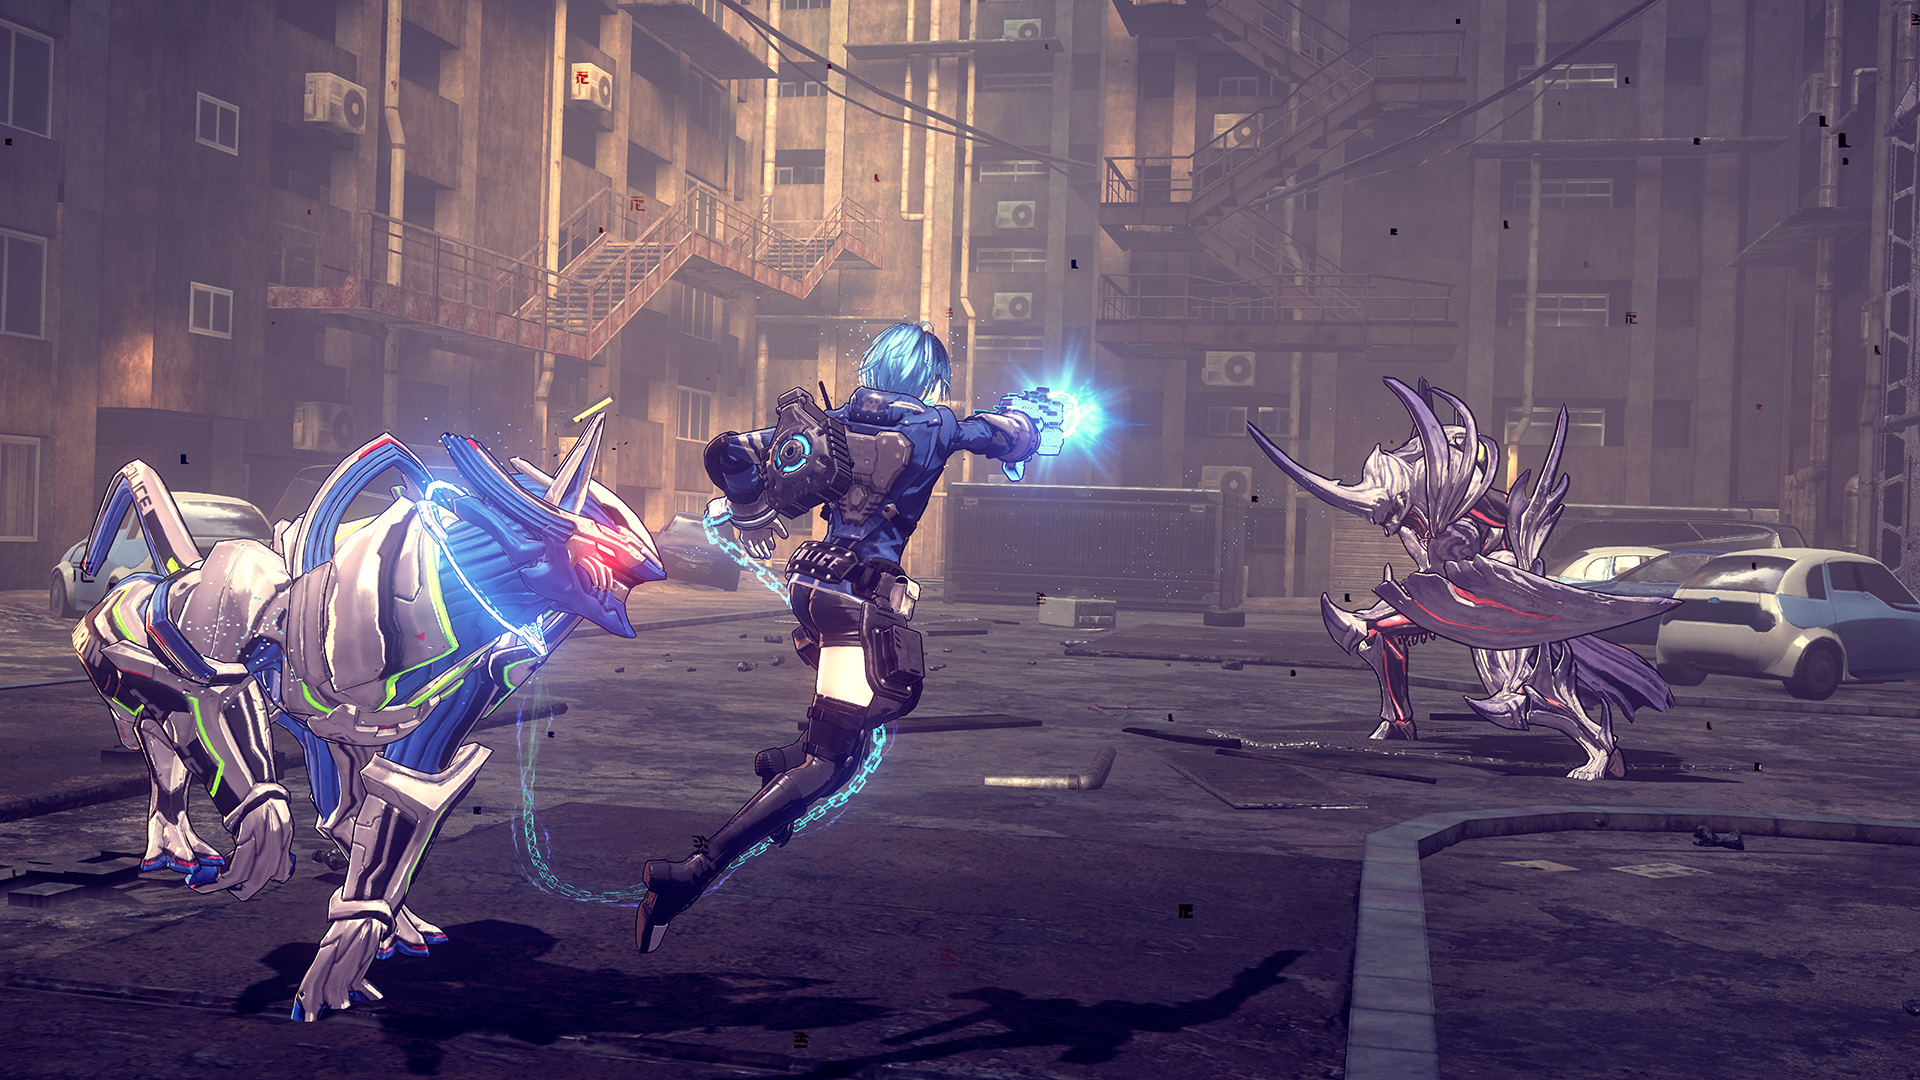 astral chain picture wallpaper 67553